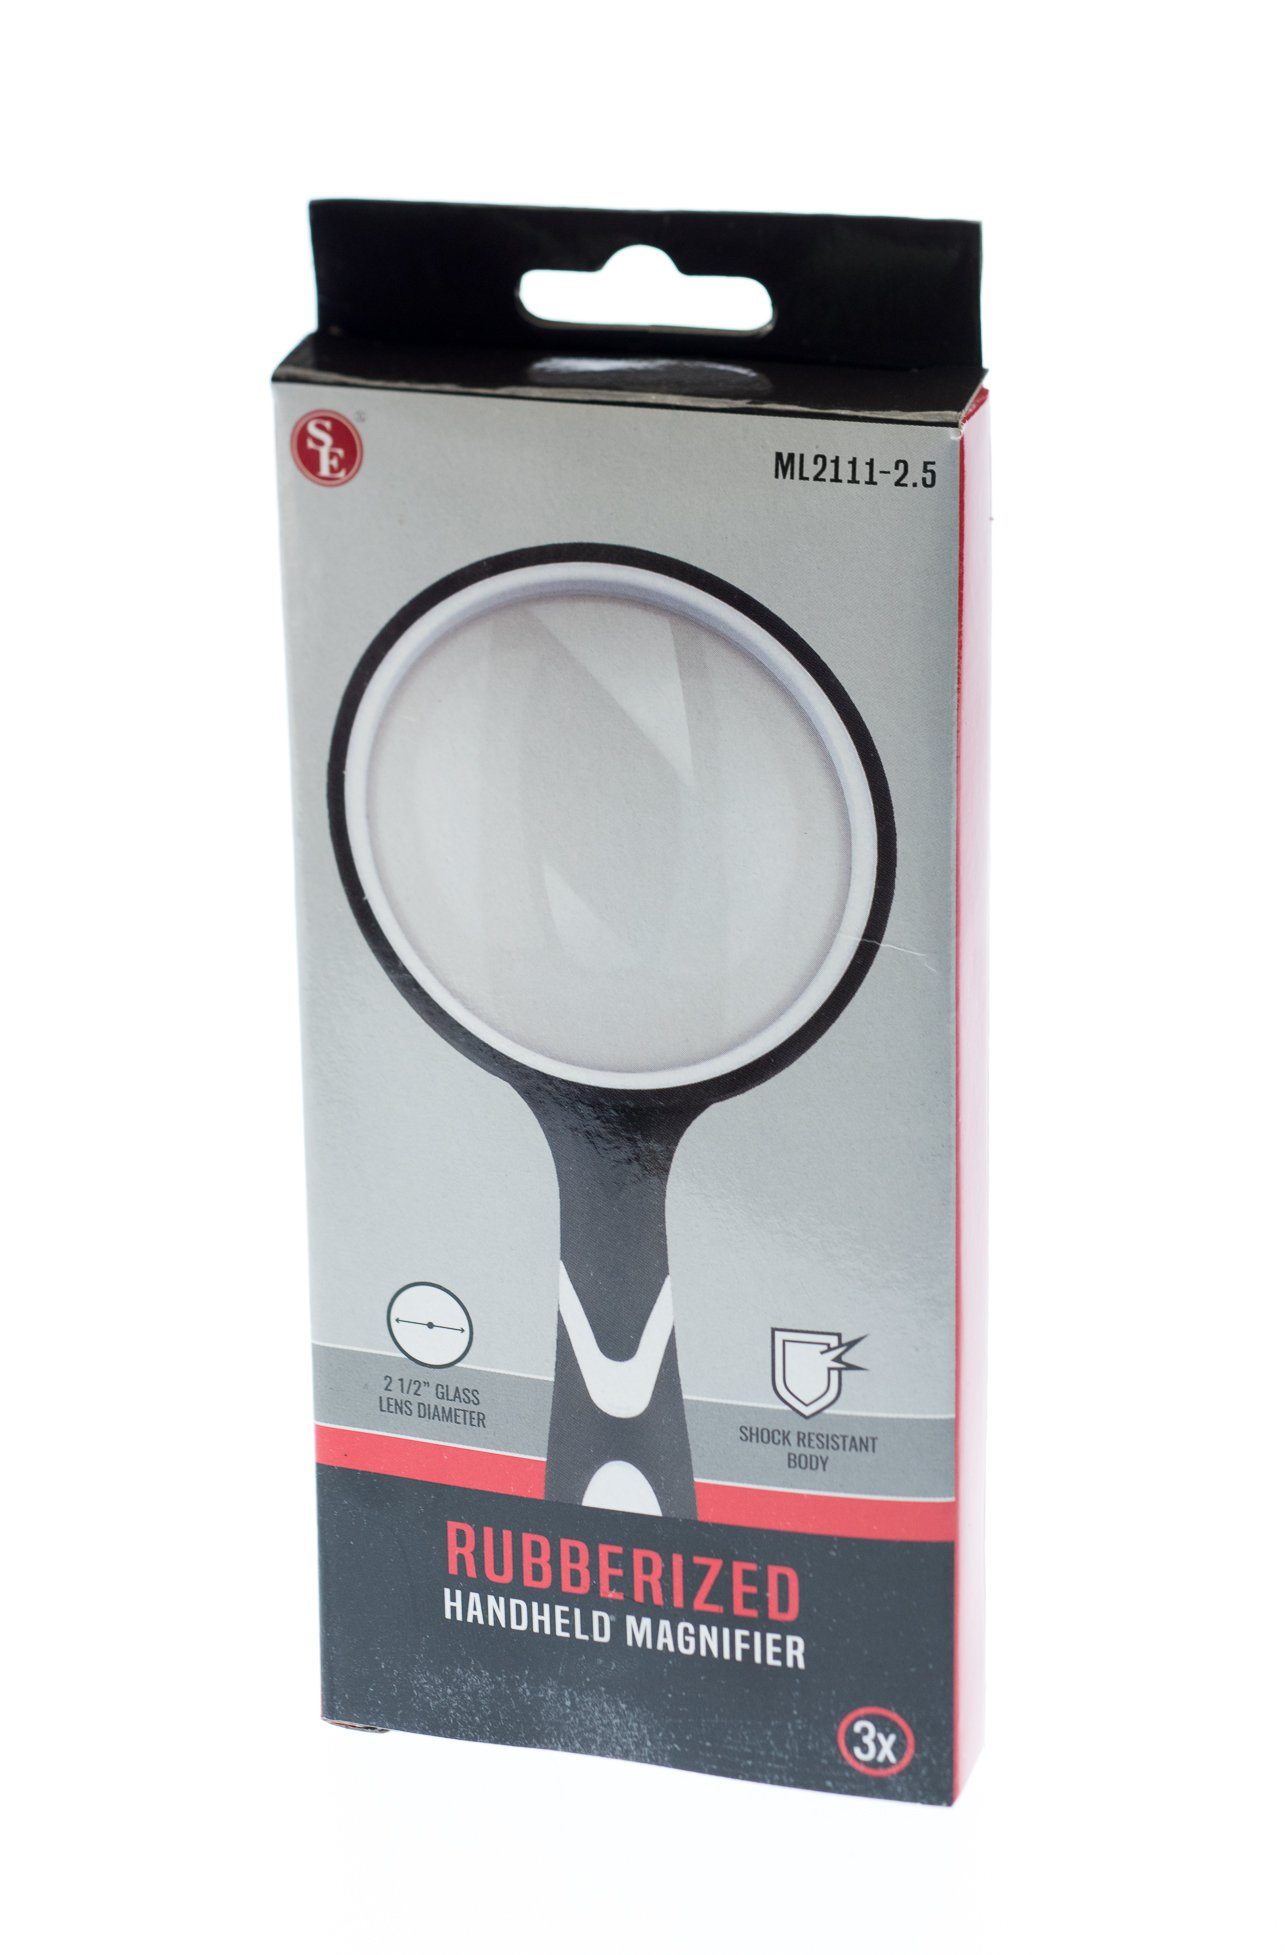 SE ML2111-2.5 2.5-Inch Handheld Magnifier with 3X Magnification (9 Diopter), Rubberized Body by SE (Image #5)